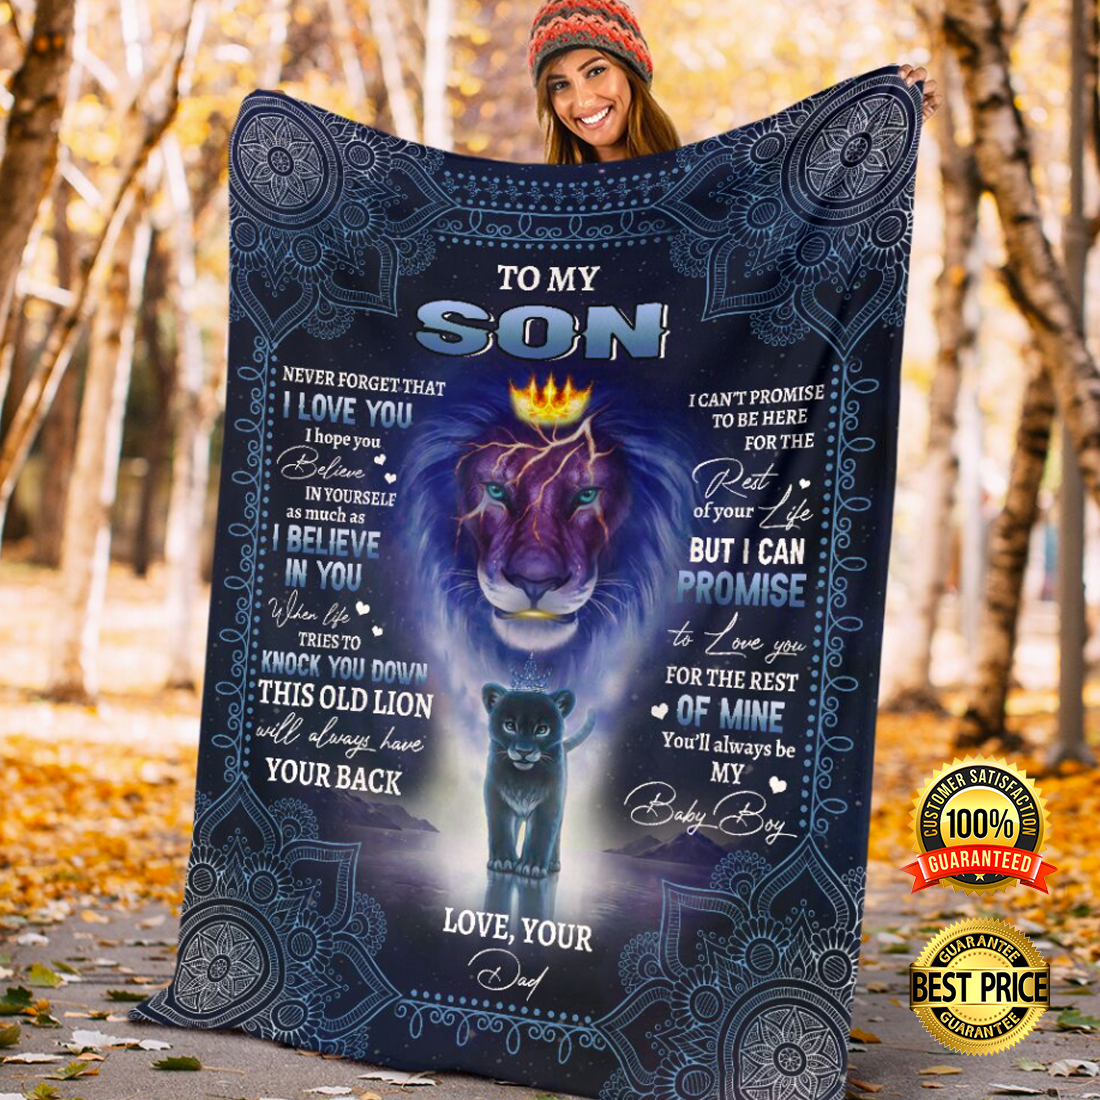 LION KING TO MY SON NEVER FORGET THAT I LOVE YOU BLANKET 6